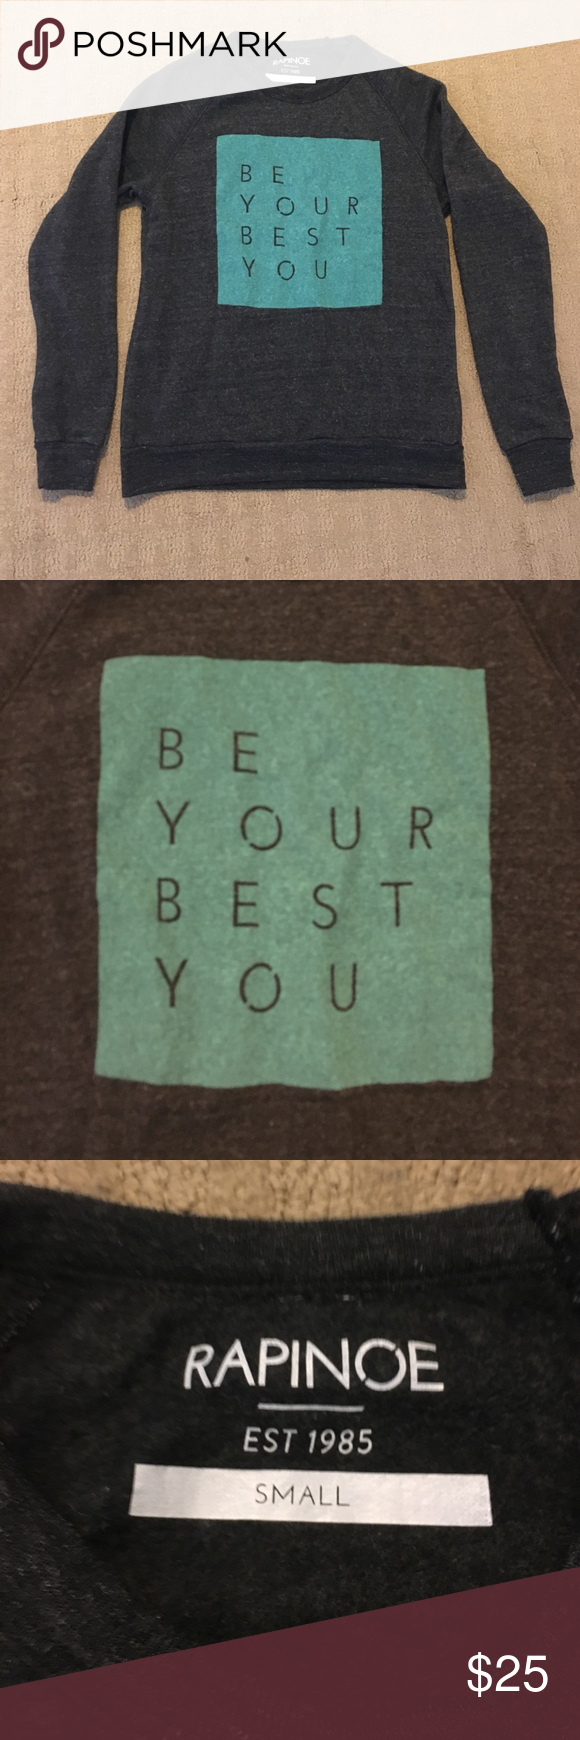 Crew neck sweatshirt Grey crew neck sweatshirt, with inspirational message in a teal square. Never worn. Super soft. Tops Sweatshirts & Hoodies